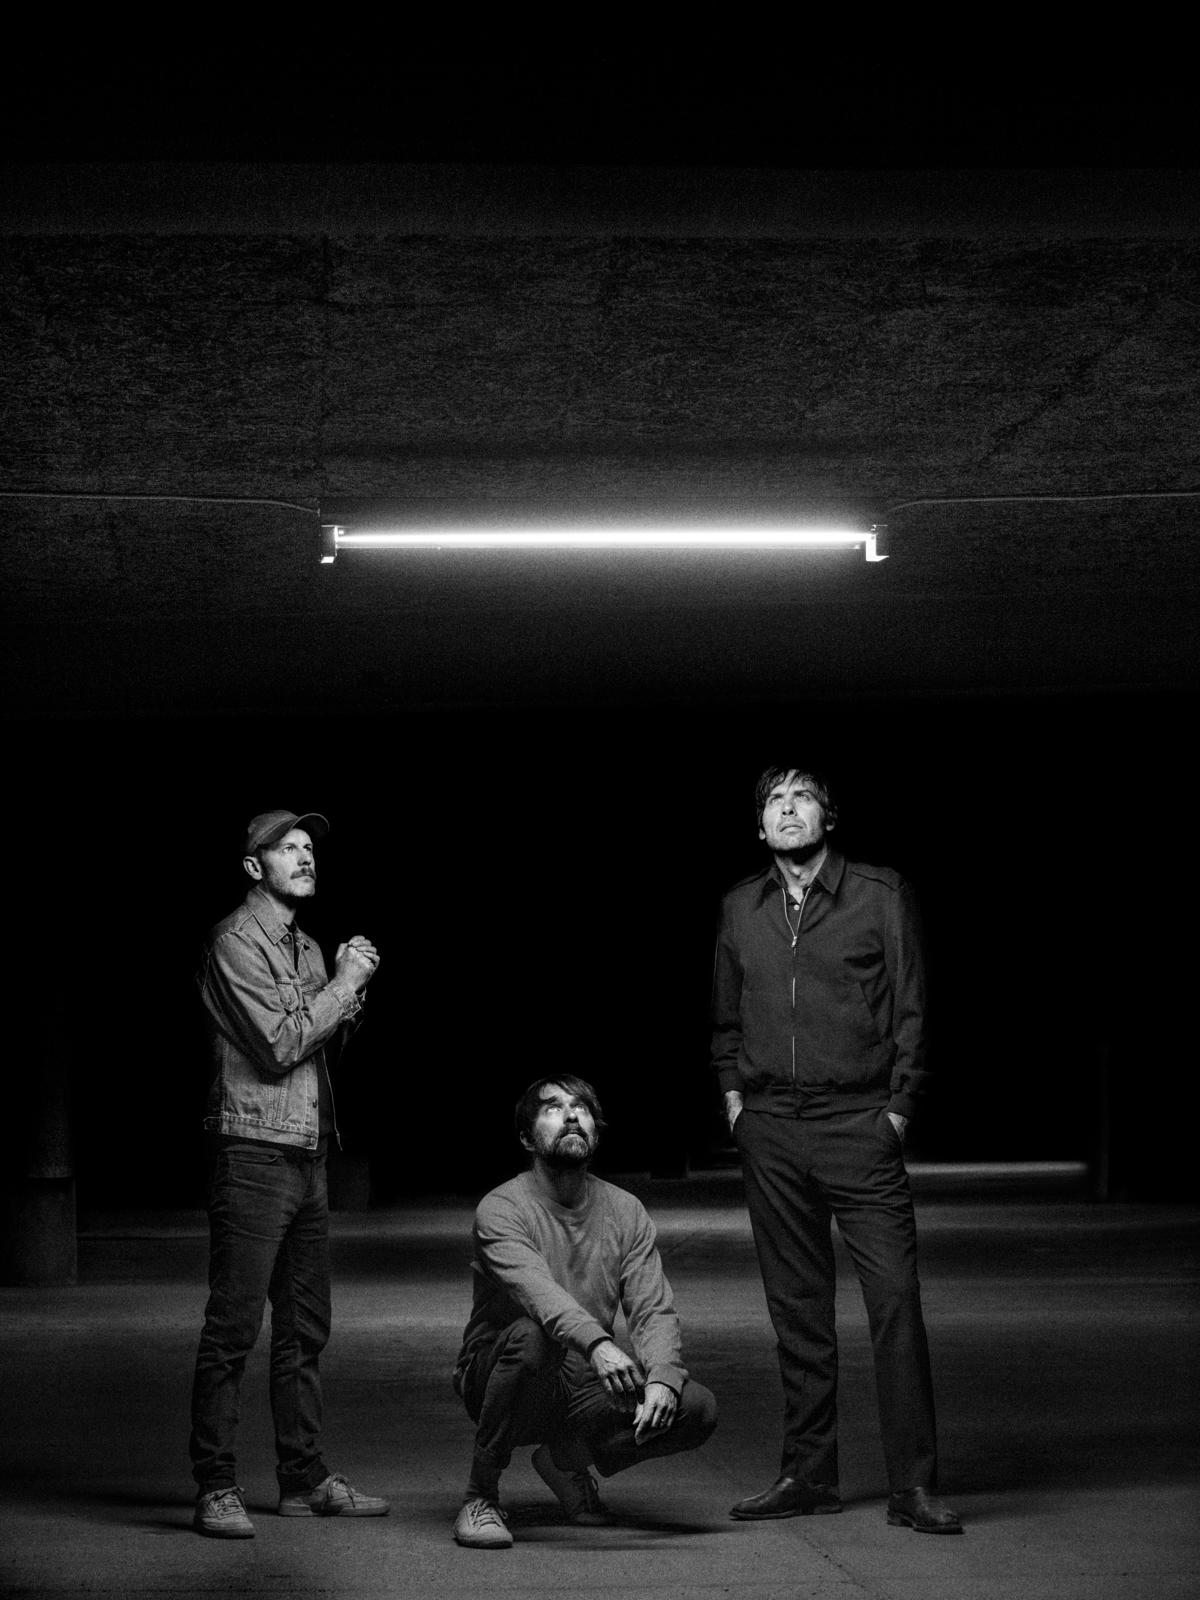 Peter Bjorn and John släpper nya albumet Darker Days.